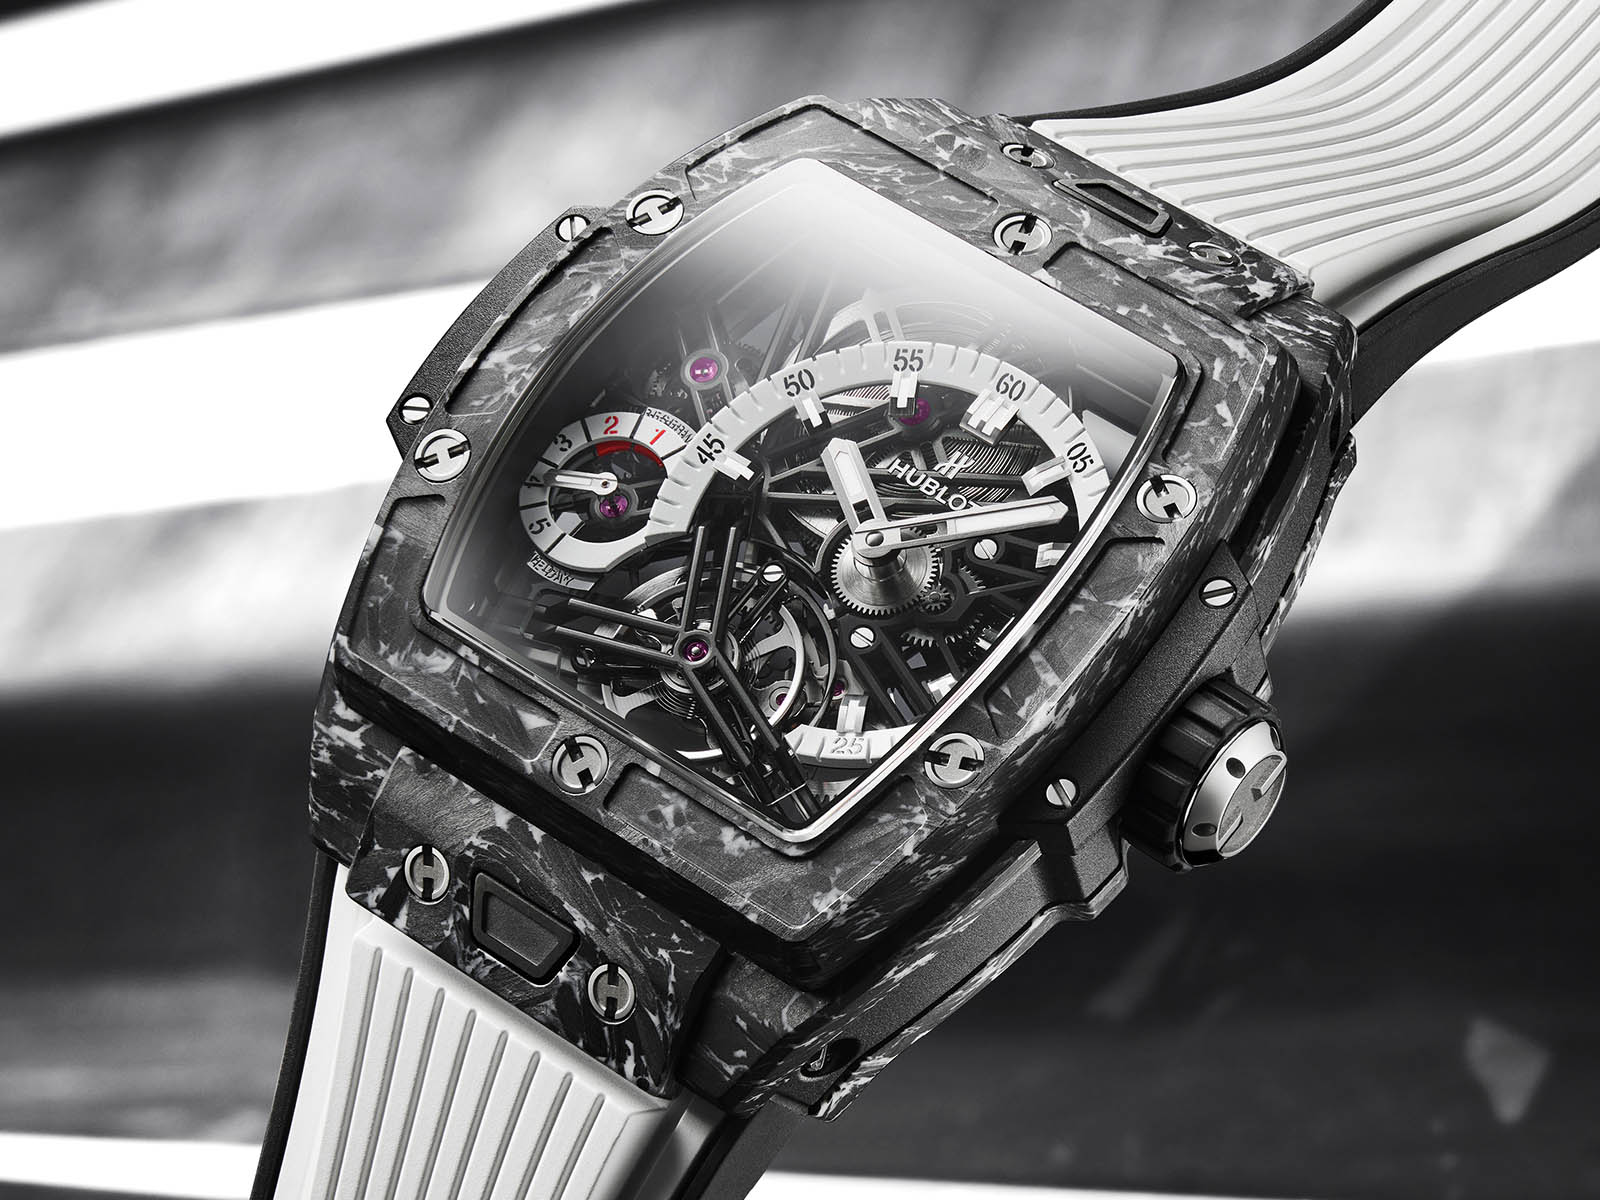 hublot-spirit-of-big-bang-tourbillon-5-day-power-reserve-carbon-white-1.jpg